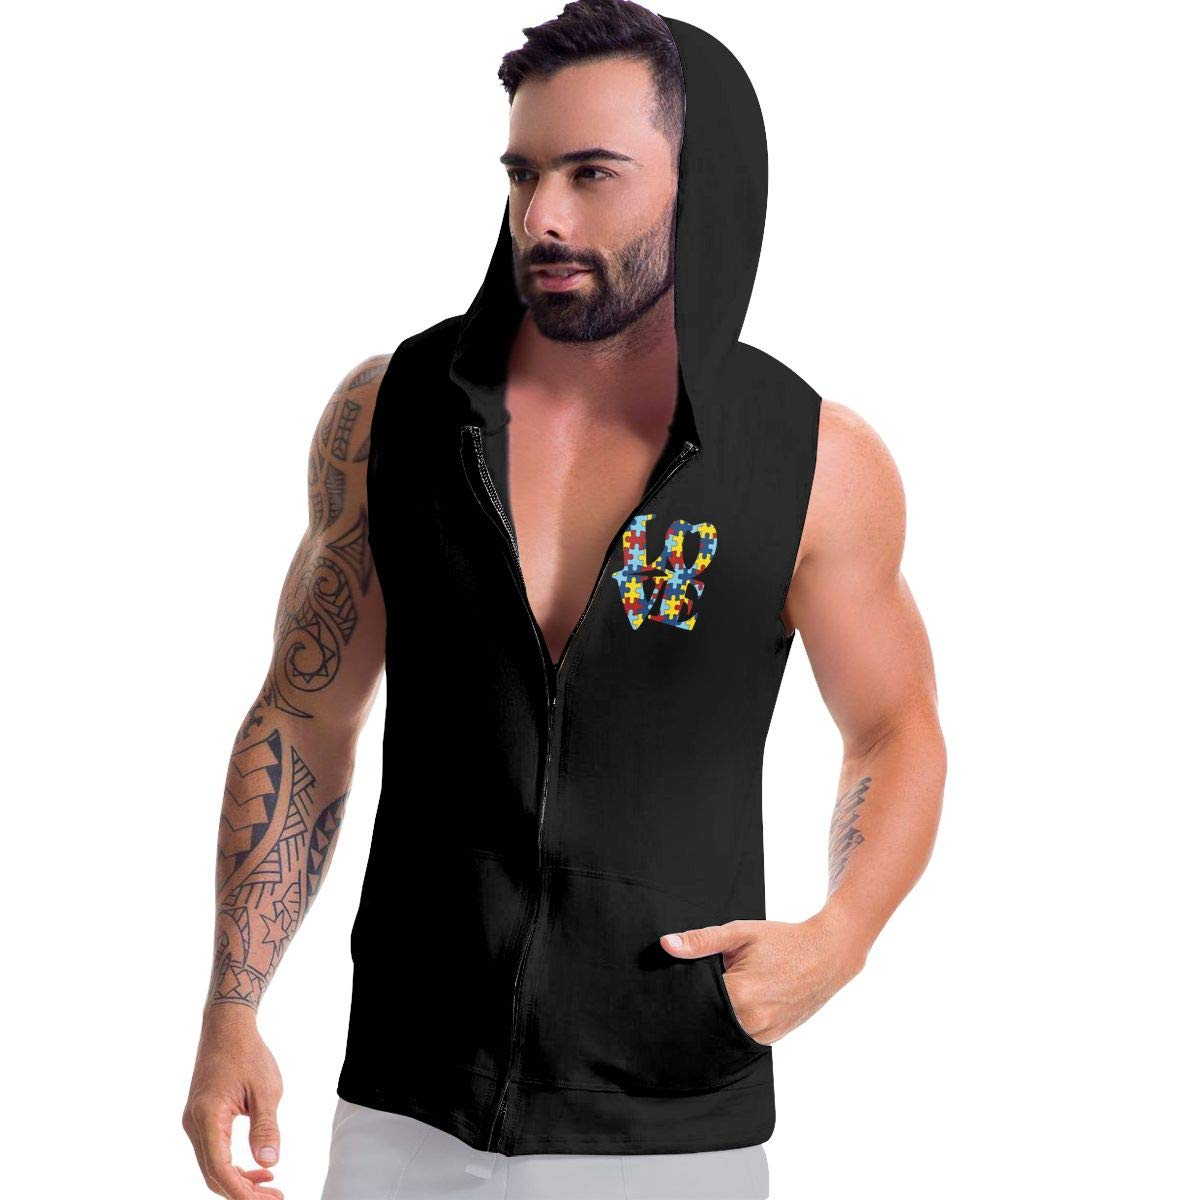 Autism Awareness Love Mens Sleeveless Zipper Hoodie Sweatshirt Gym Tank Top